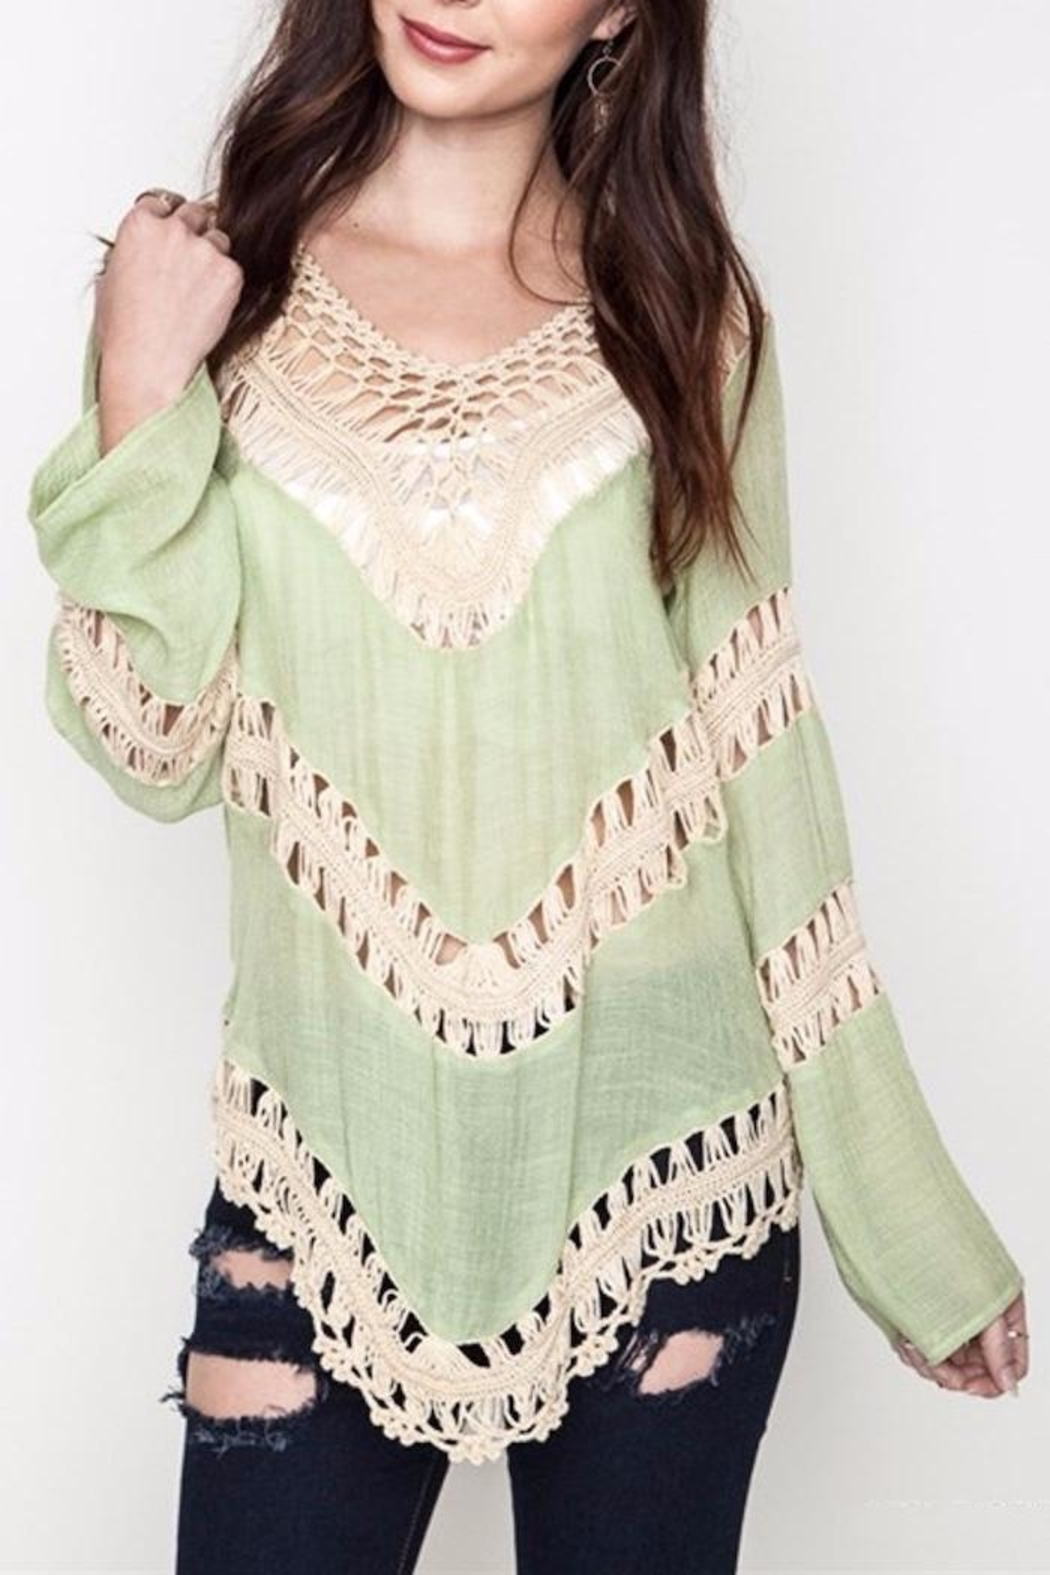 People Outfitter Crochet Festival Top From New York Shoptiques